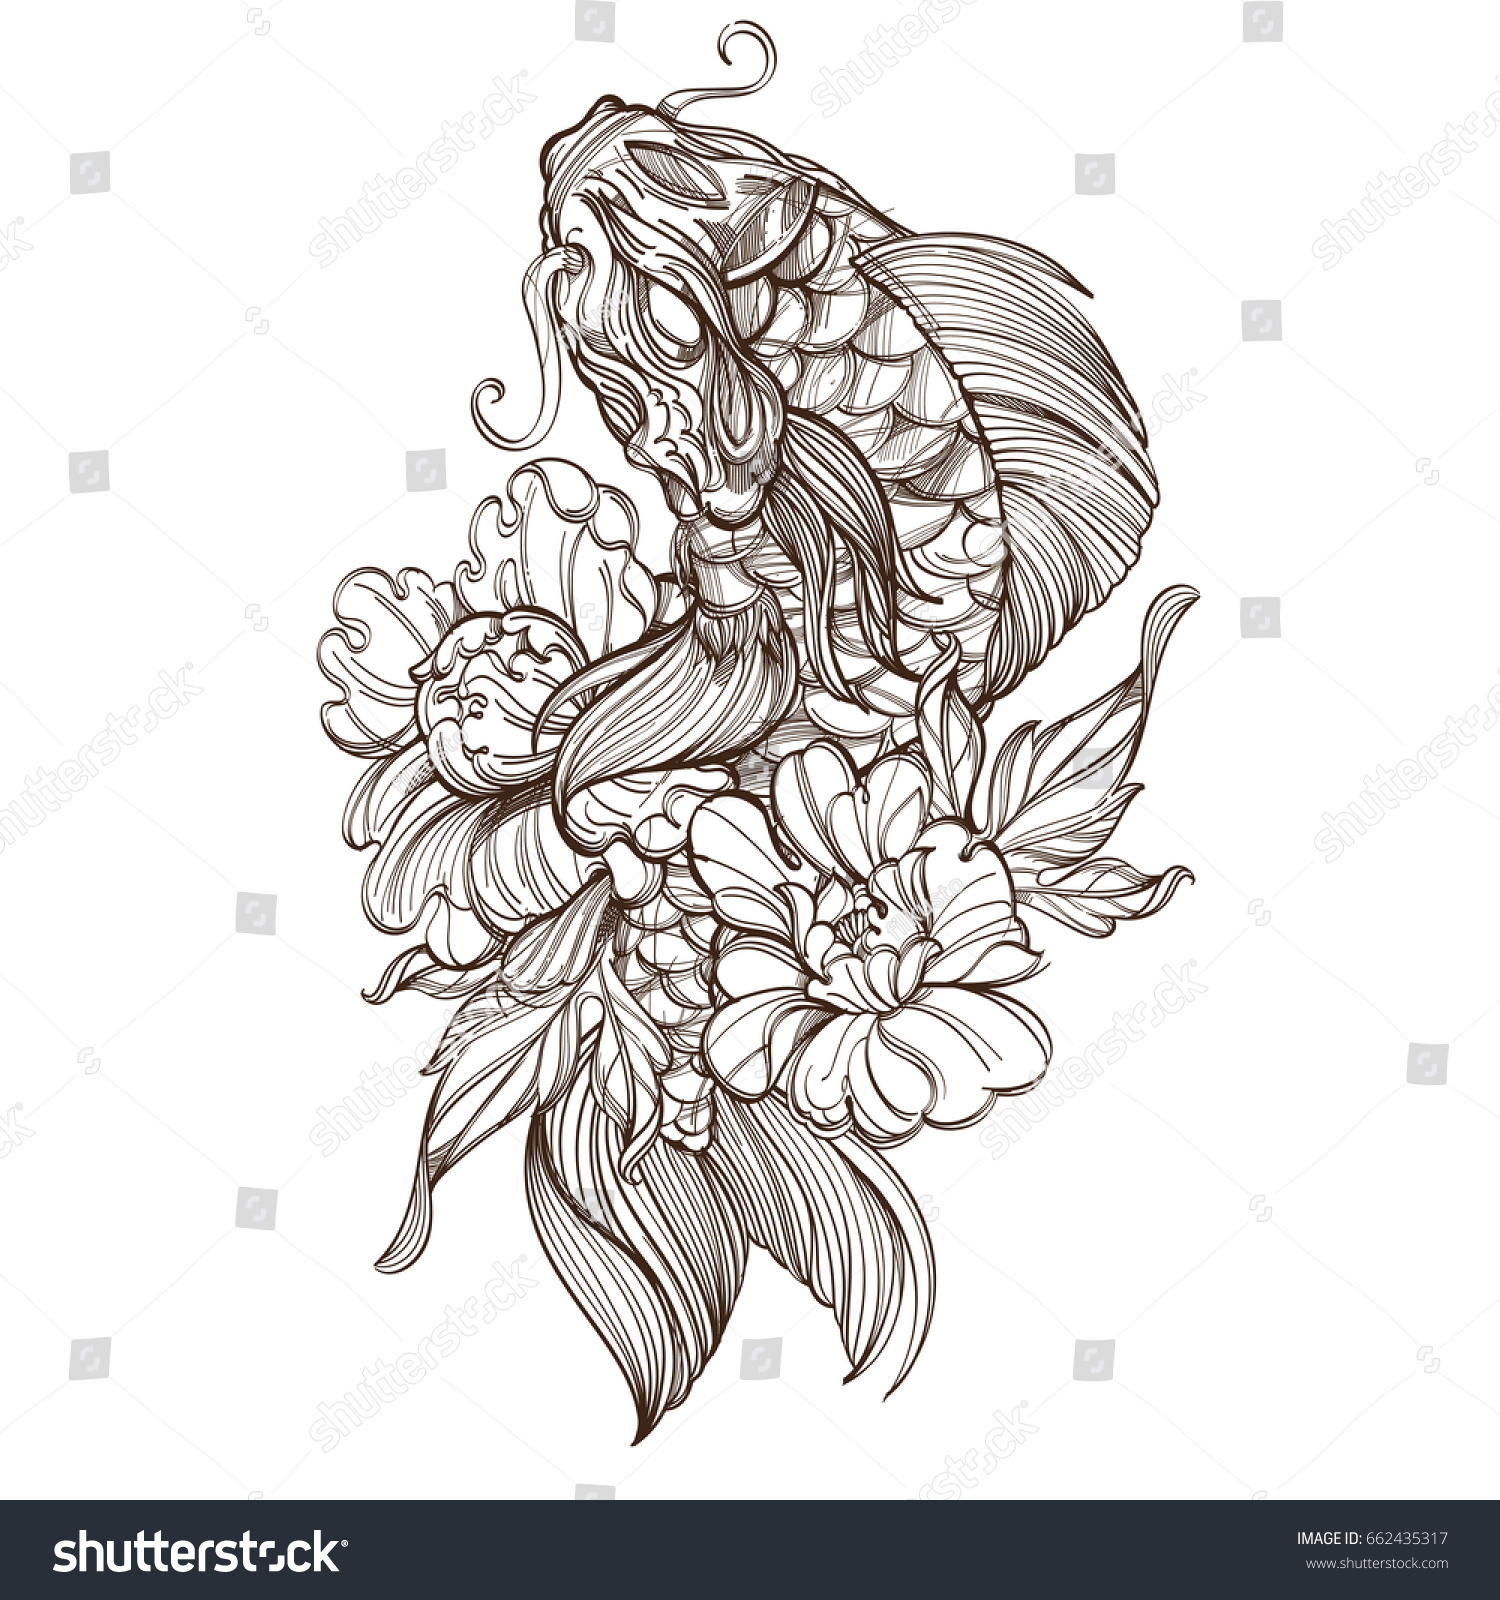 Koi Coloring Pages Gallery Koi Fish Coloring Page Group 57 ... | 1600x1500